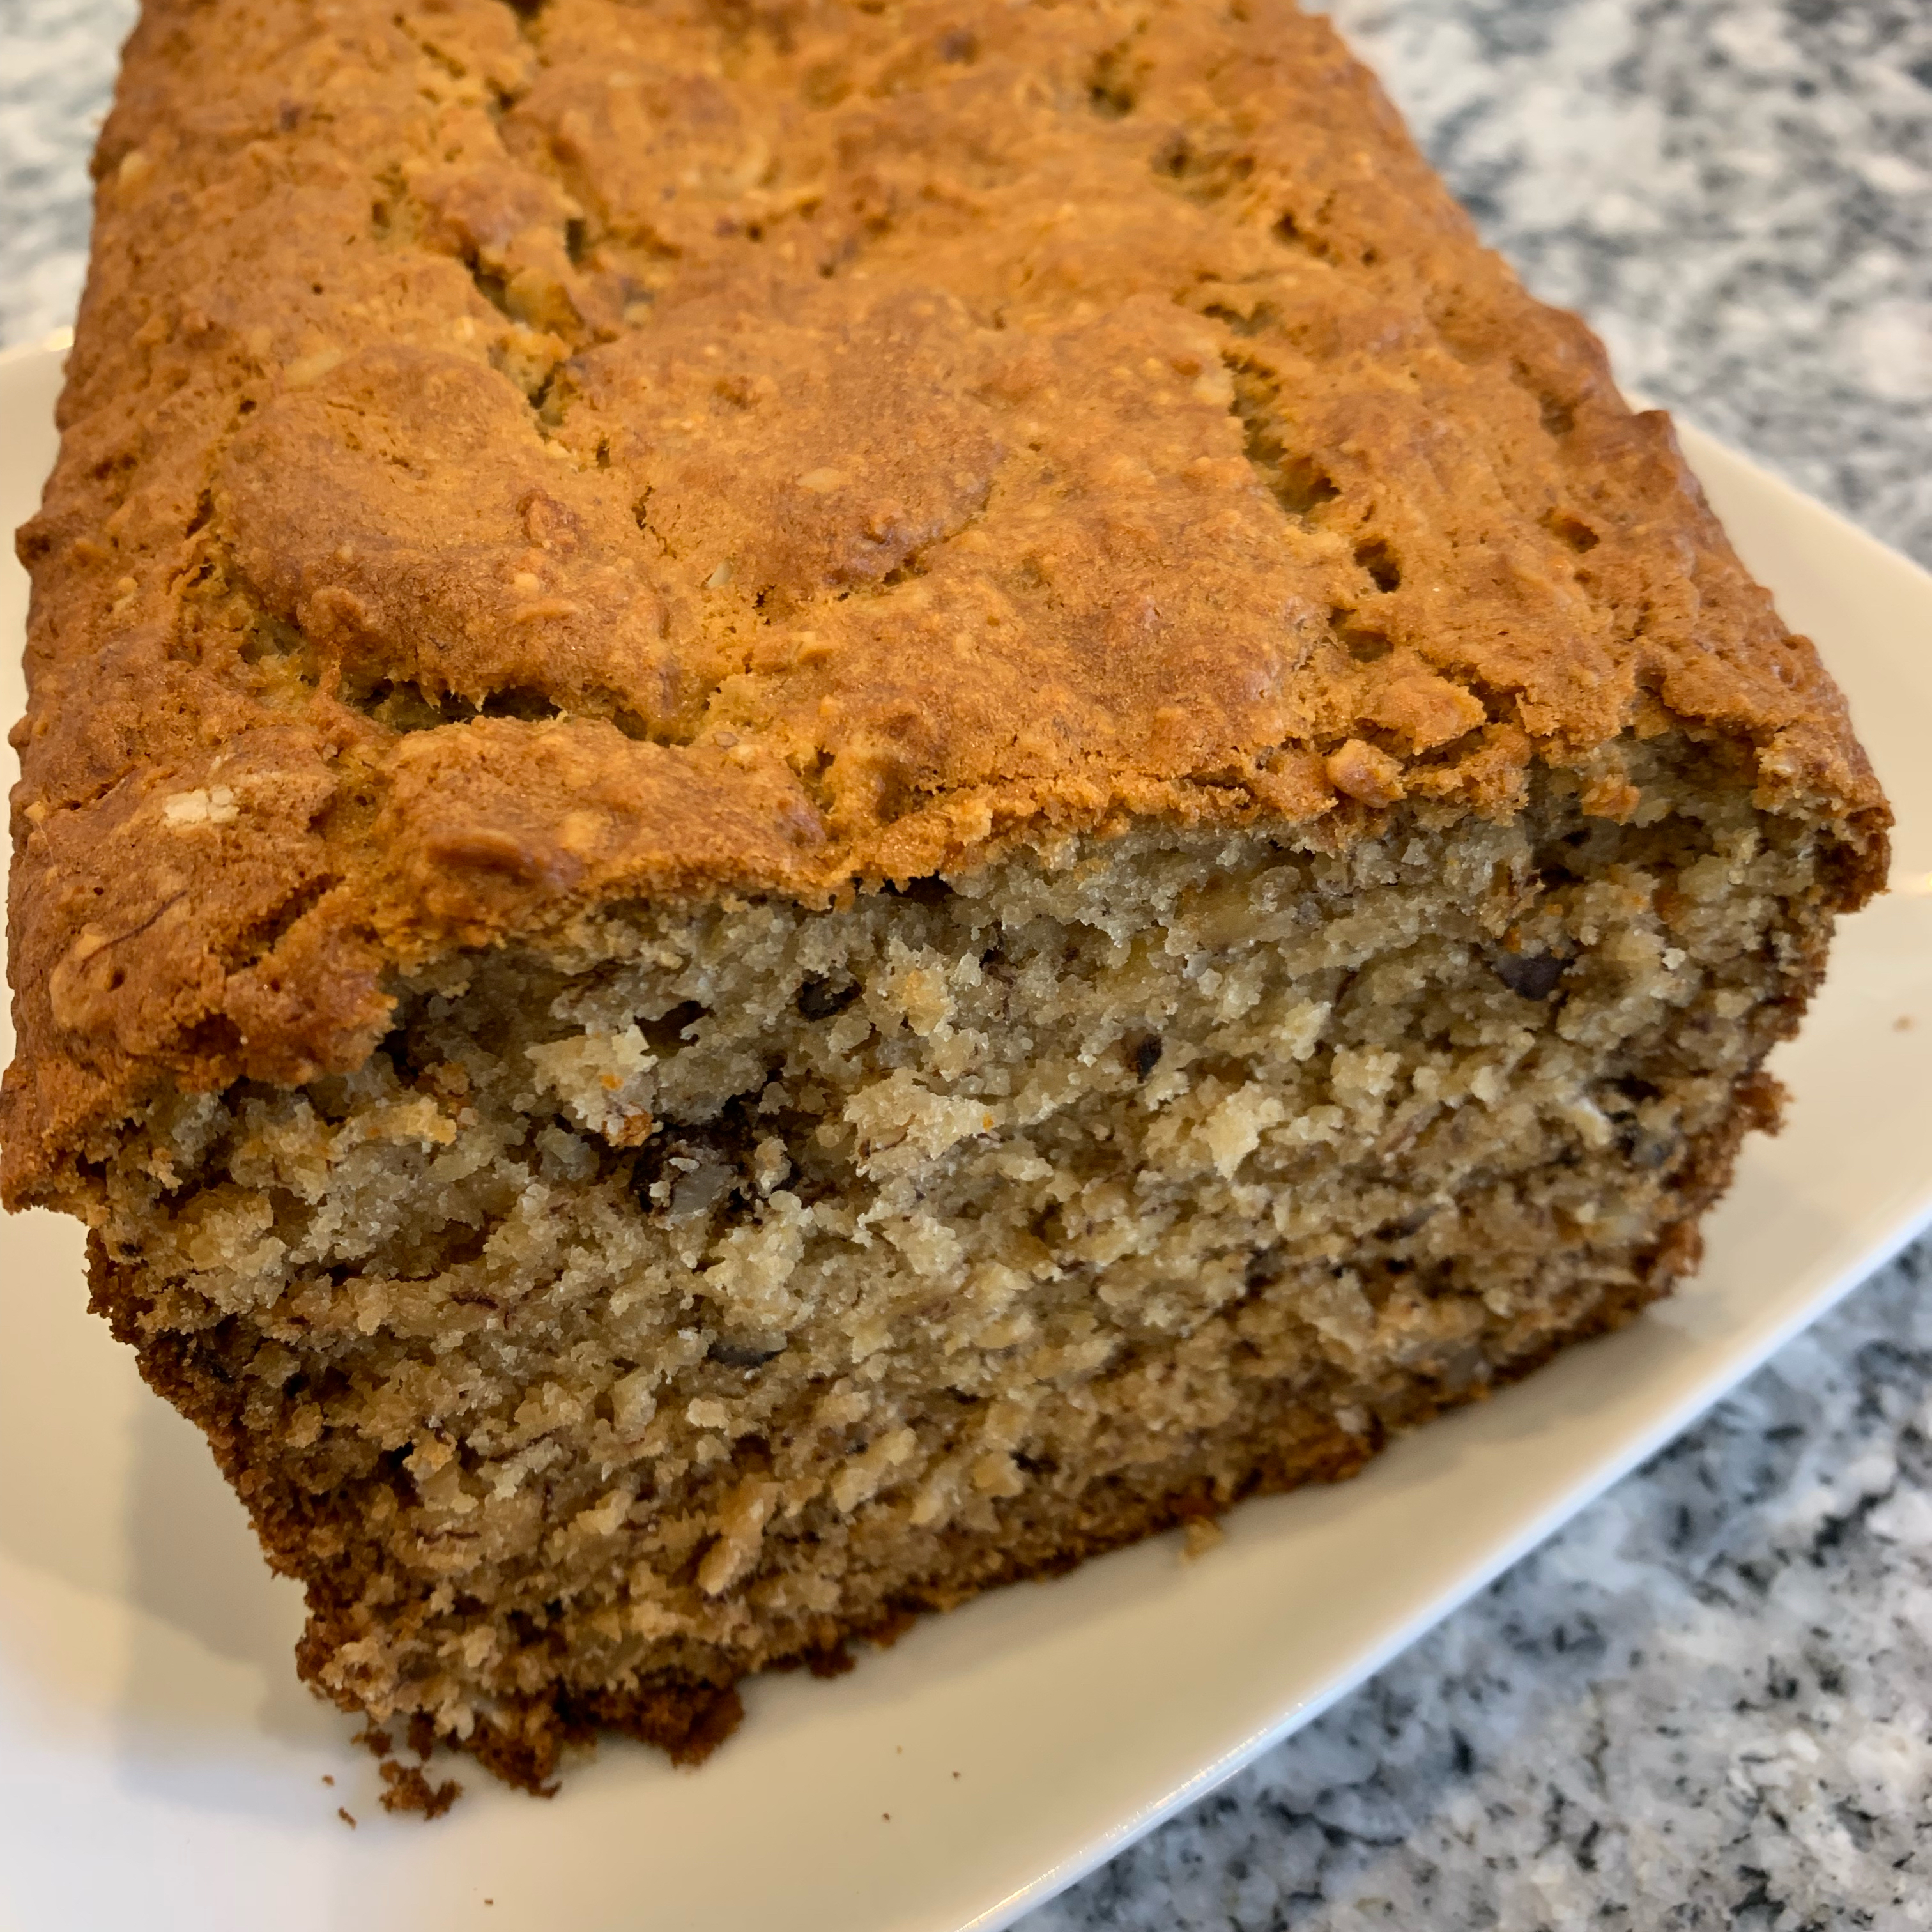 Dee-licious Greek Yogurt Banana Bread